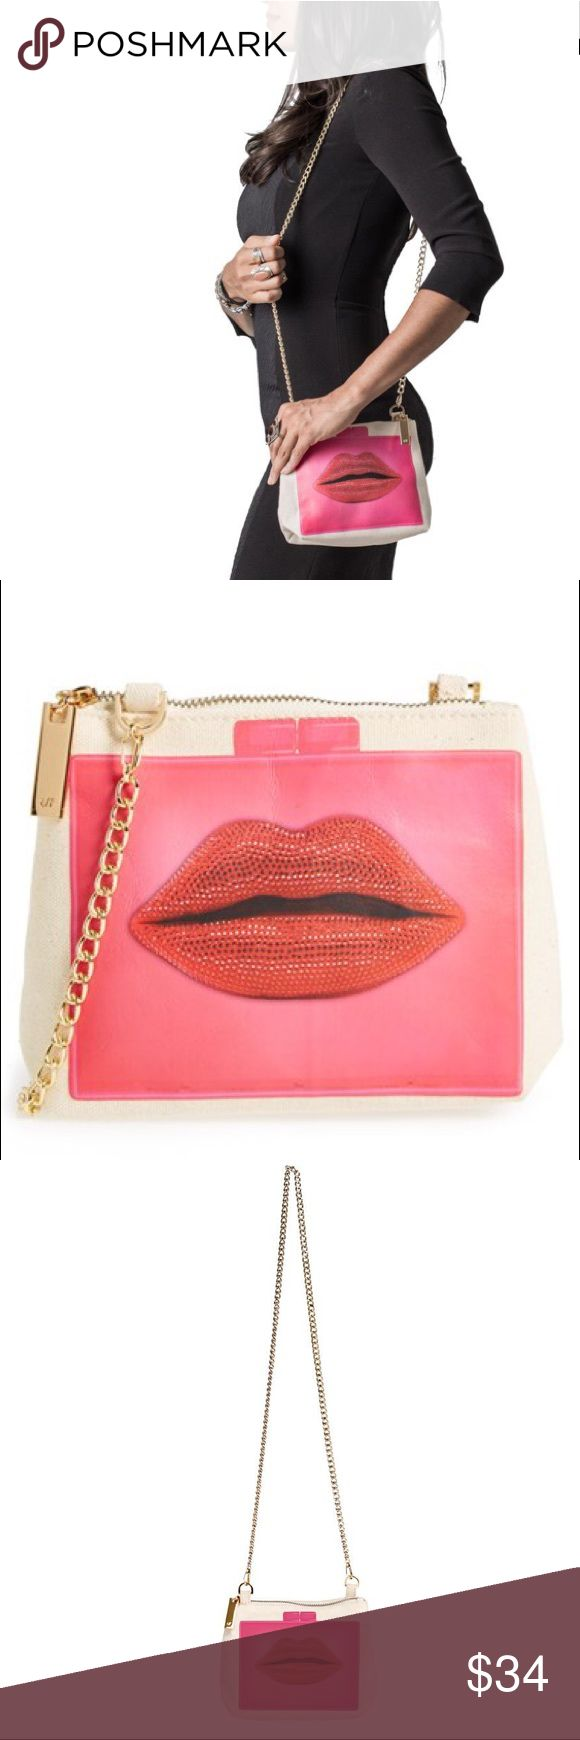 Thursday Friday Away Mini Clutch, Lips in Pink This new sold out carry-everywhere travel clutch will help you simplify any day on the go. Its removable chain strap and roomy interior makes it suitable for a chic cosmetic case or to carry all the necessities for a night out. It's ideal for keeping small valuables organized for a weekend away or everyday when slipped into an Everyday Tote.  Bundle deals 3 items and get an additional 15% off, great deal! Thursday Friday Bags Mini Bags